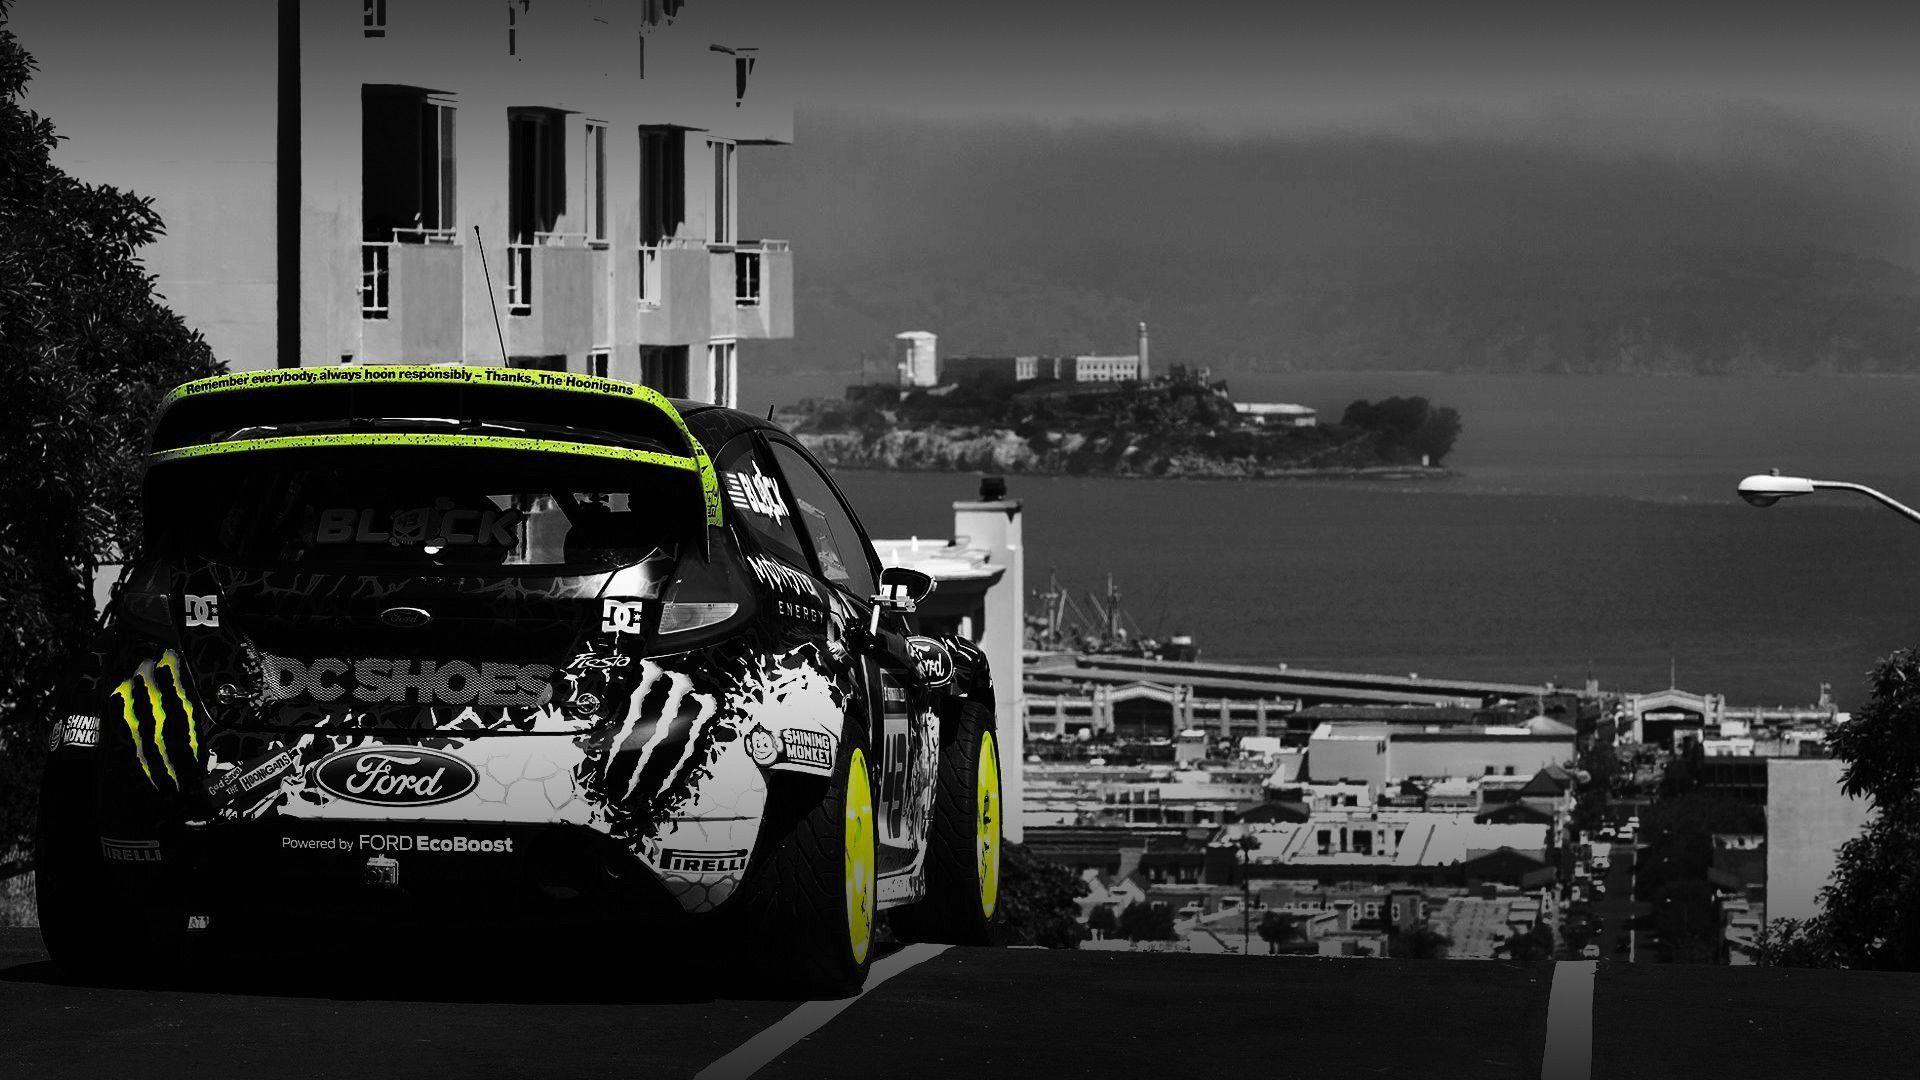 Ken Block Ford Fiesta 2016 Wallpapers Wallpaper Cave